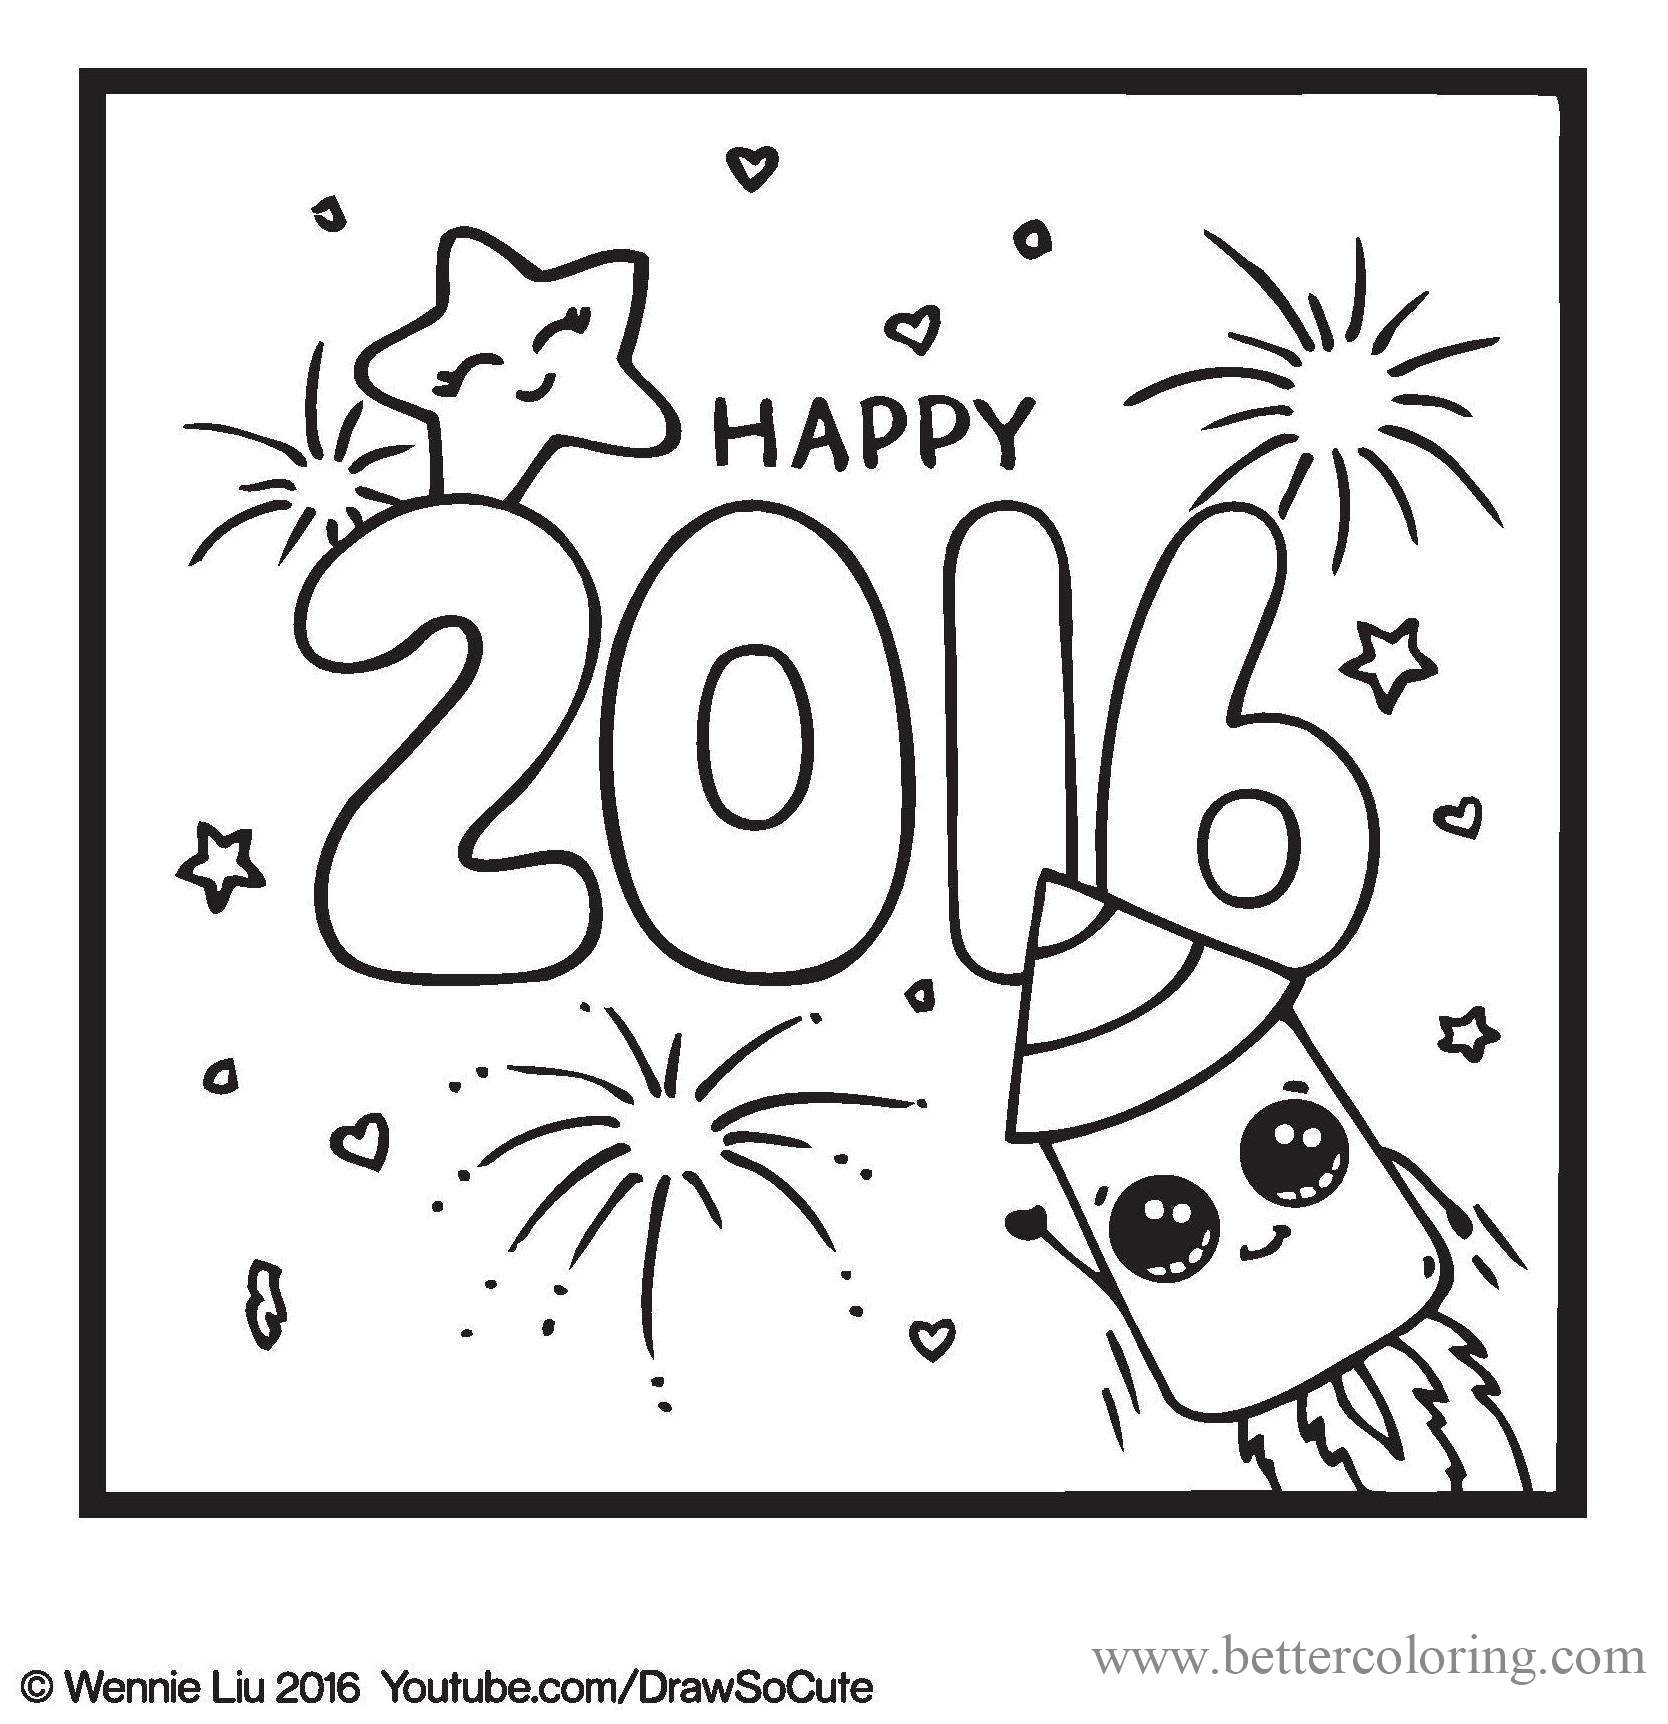 Free Draw So Cute Happy new year Coloring Pages printable